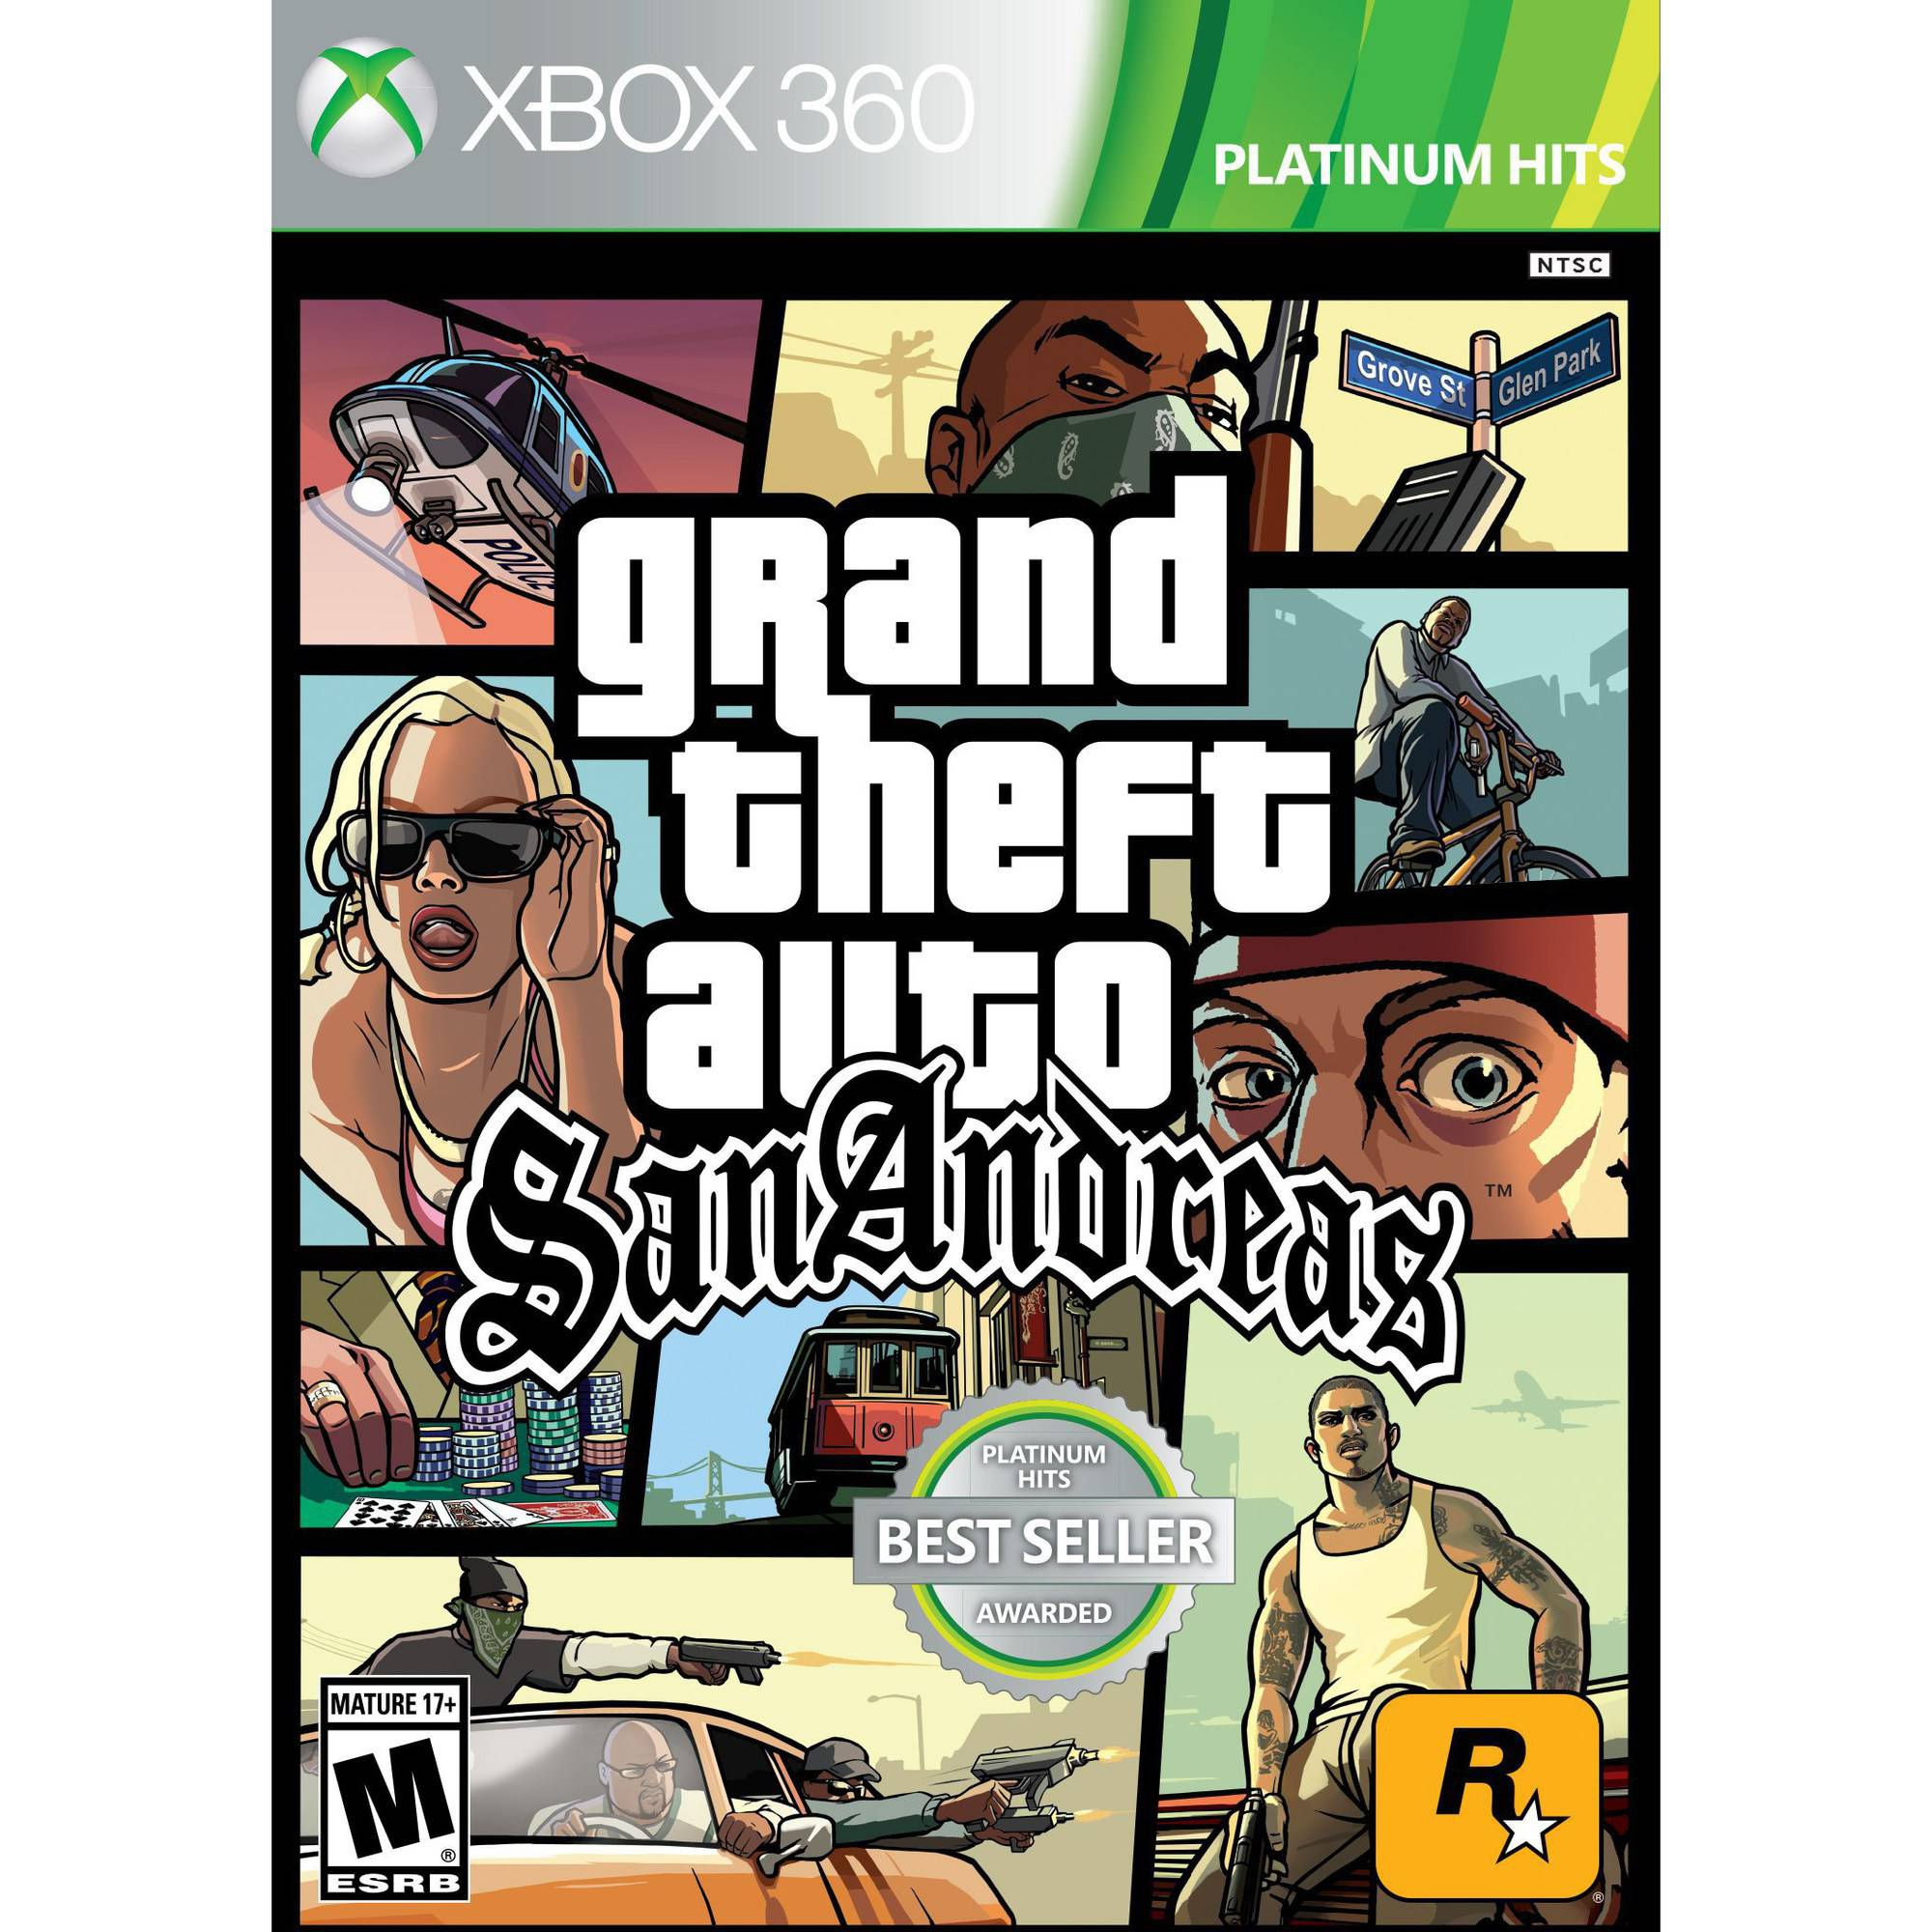 Grand Theft Auto San Andreas (Xbox 360)